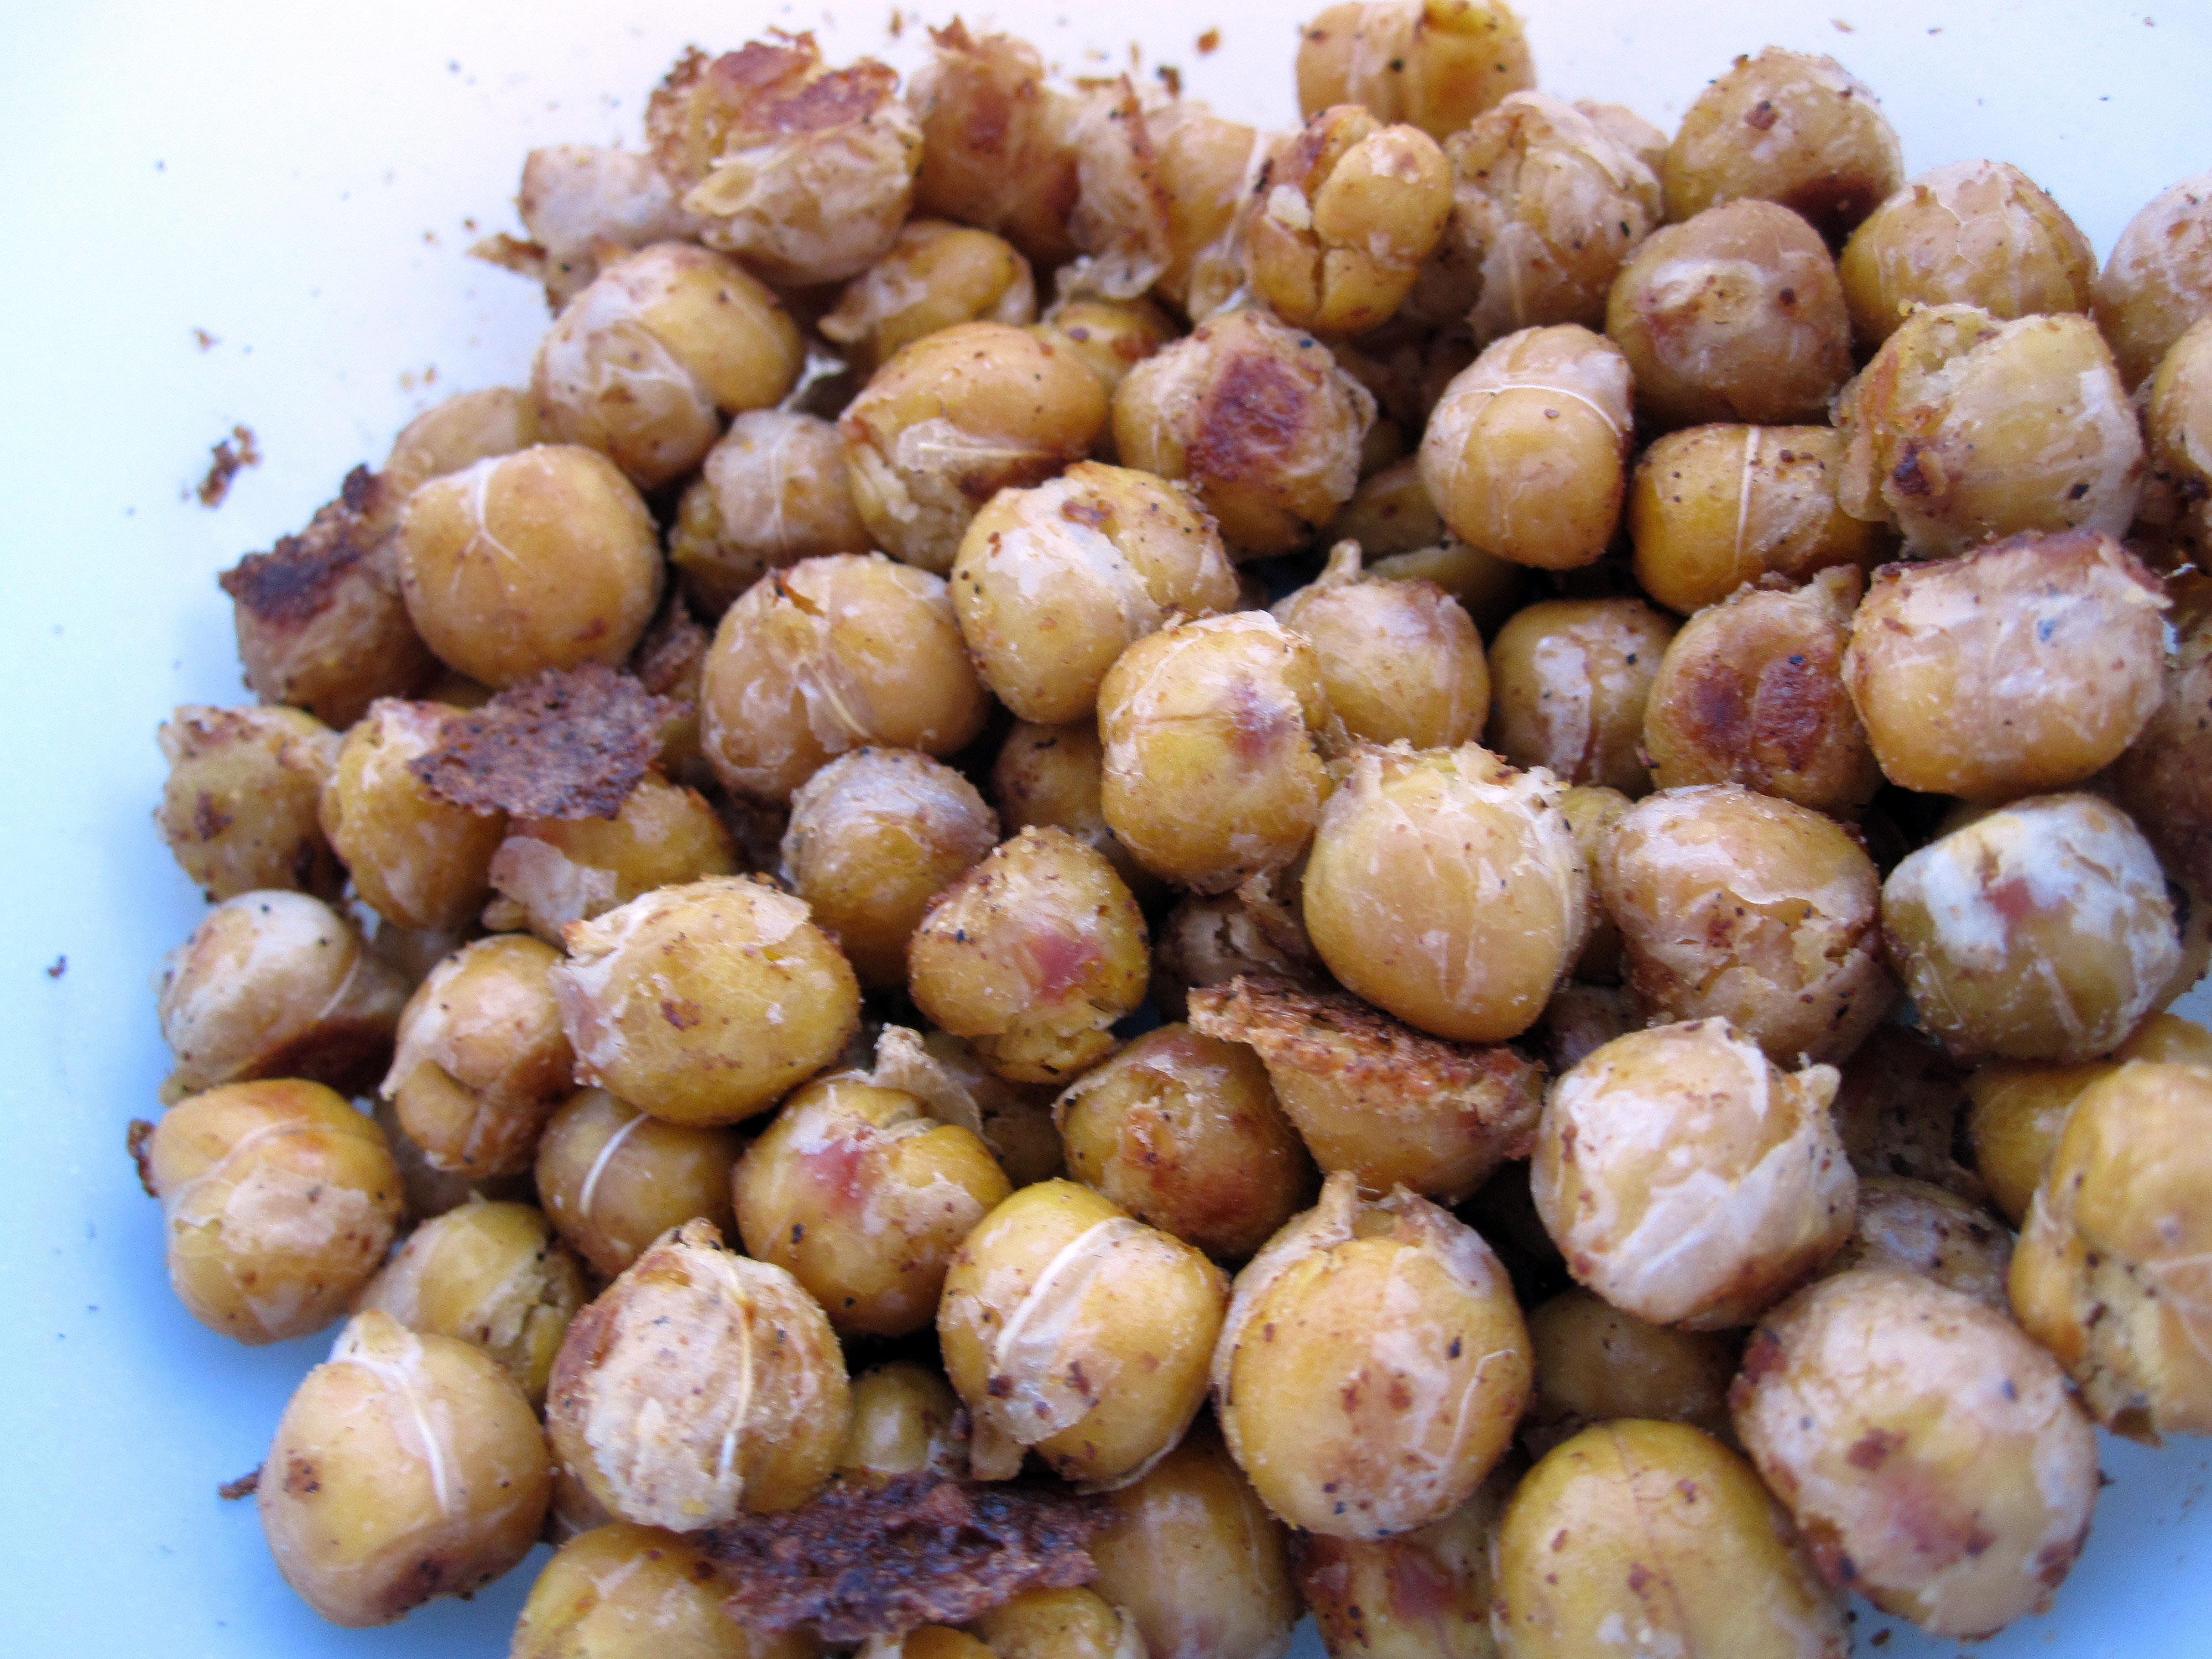 Easiest Roasted Chickpea Recipe Ever